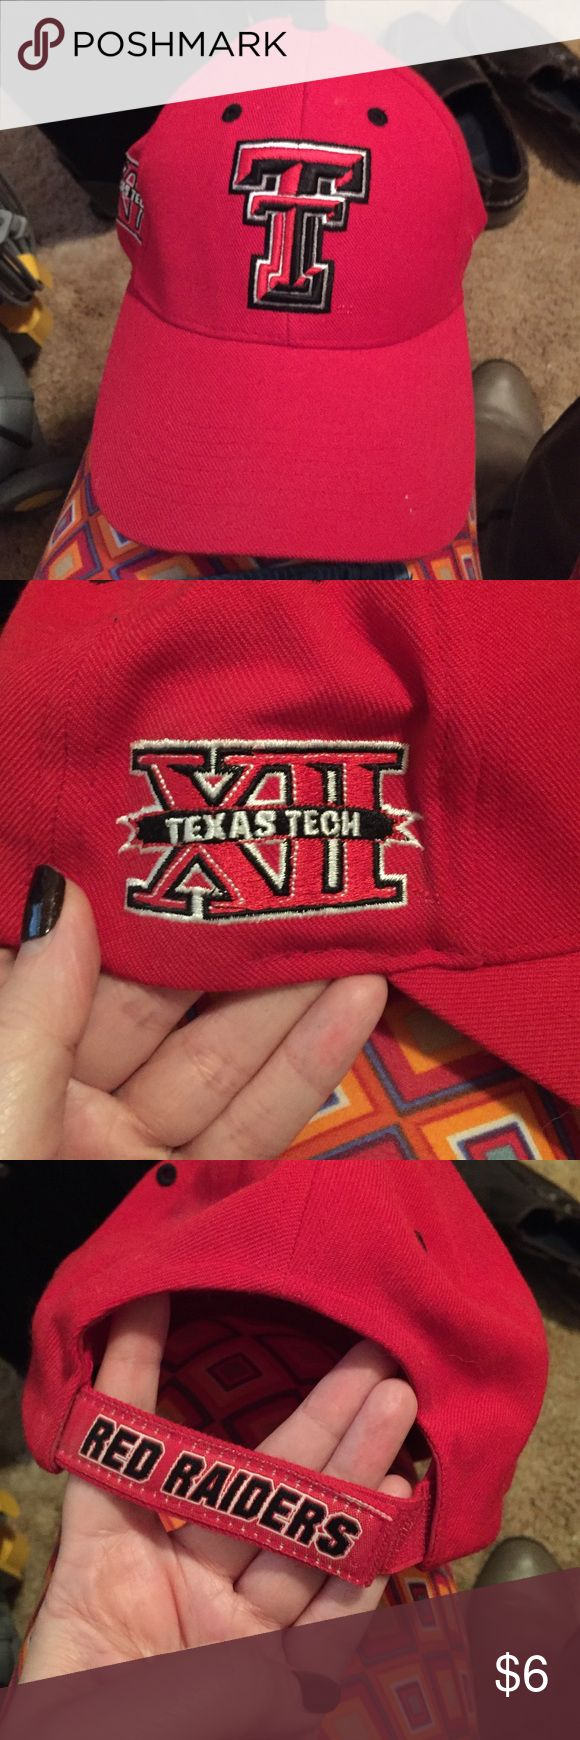 Texas Tech Baseball Hat Very good condition. Velcro adjustment in back. Accessories Hats